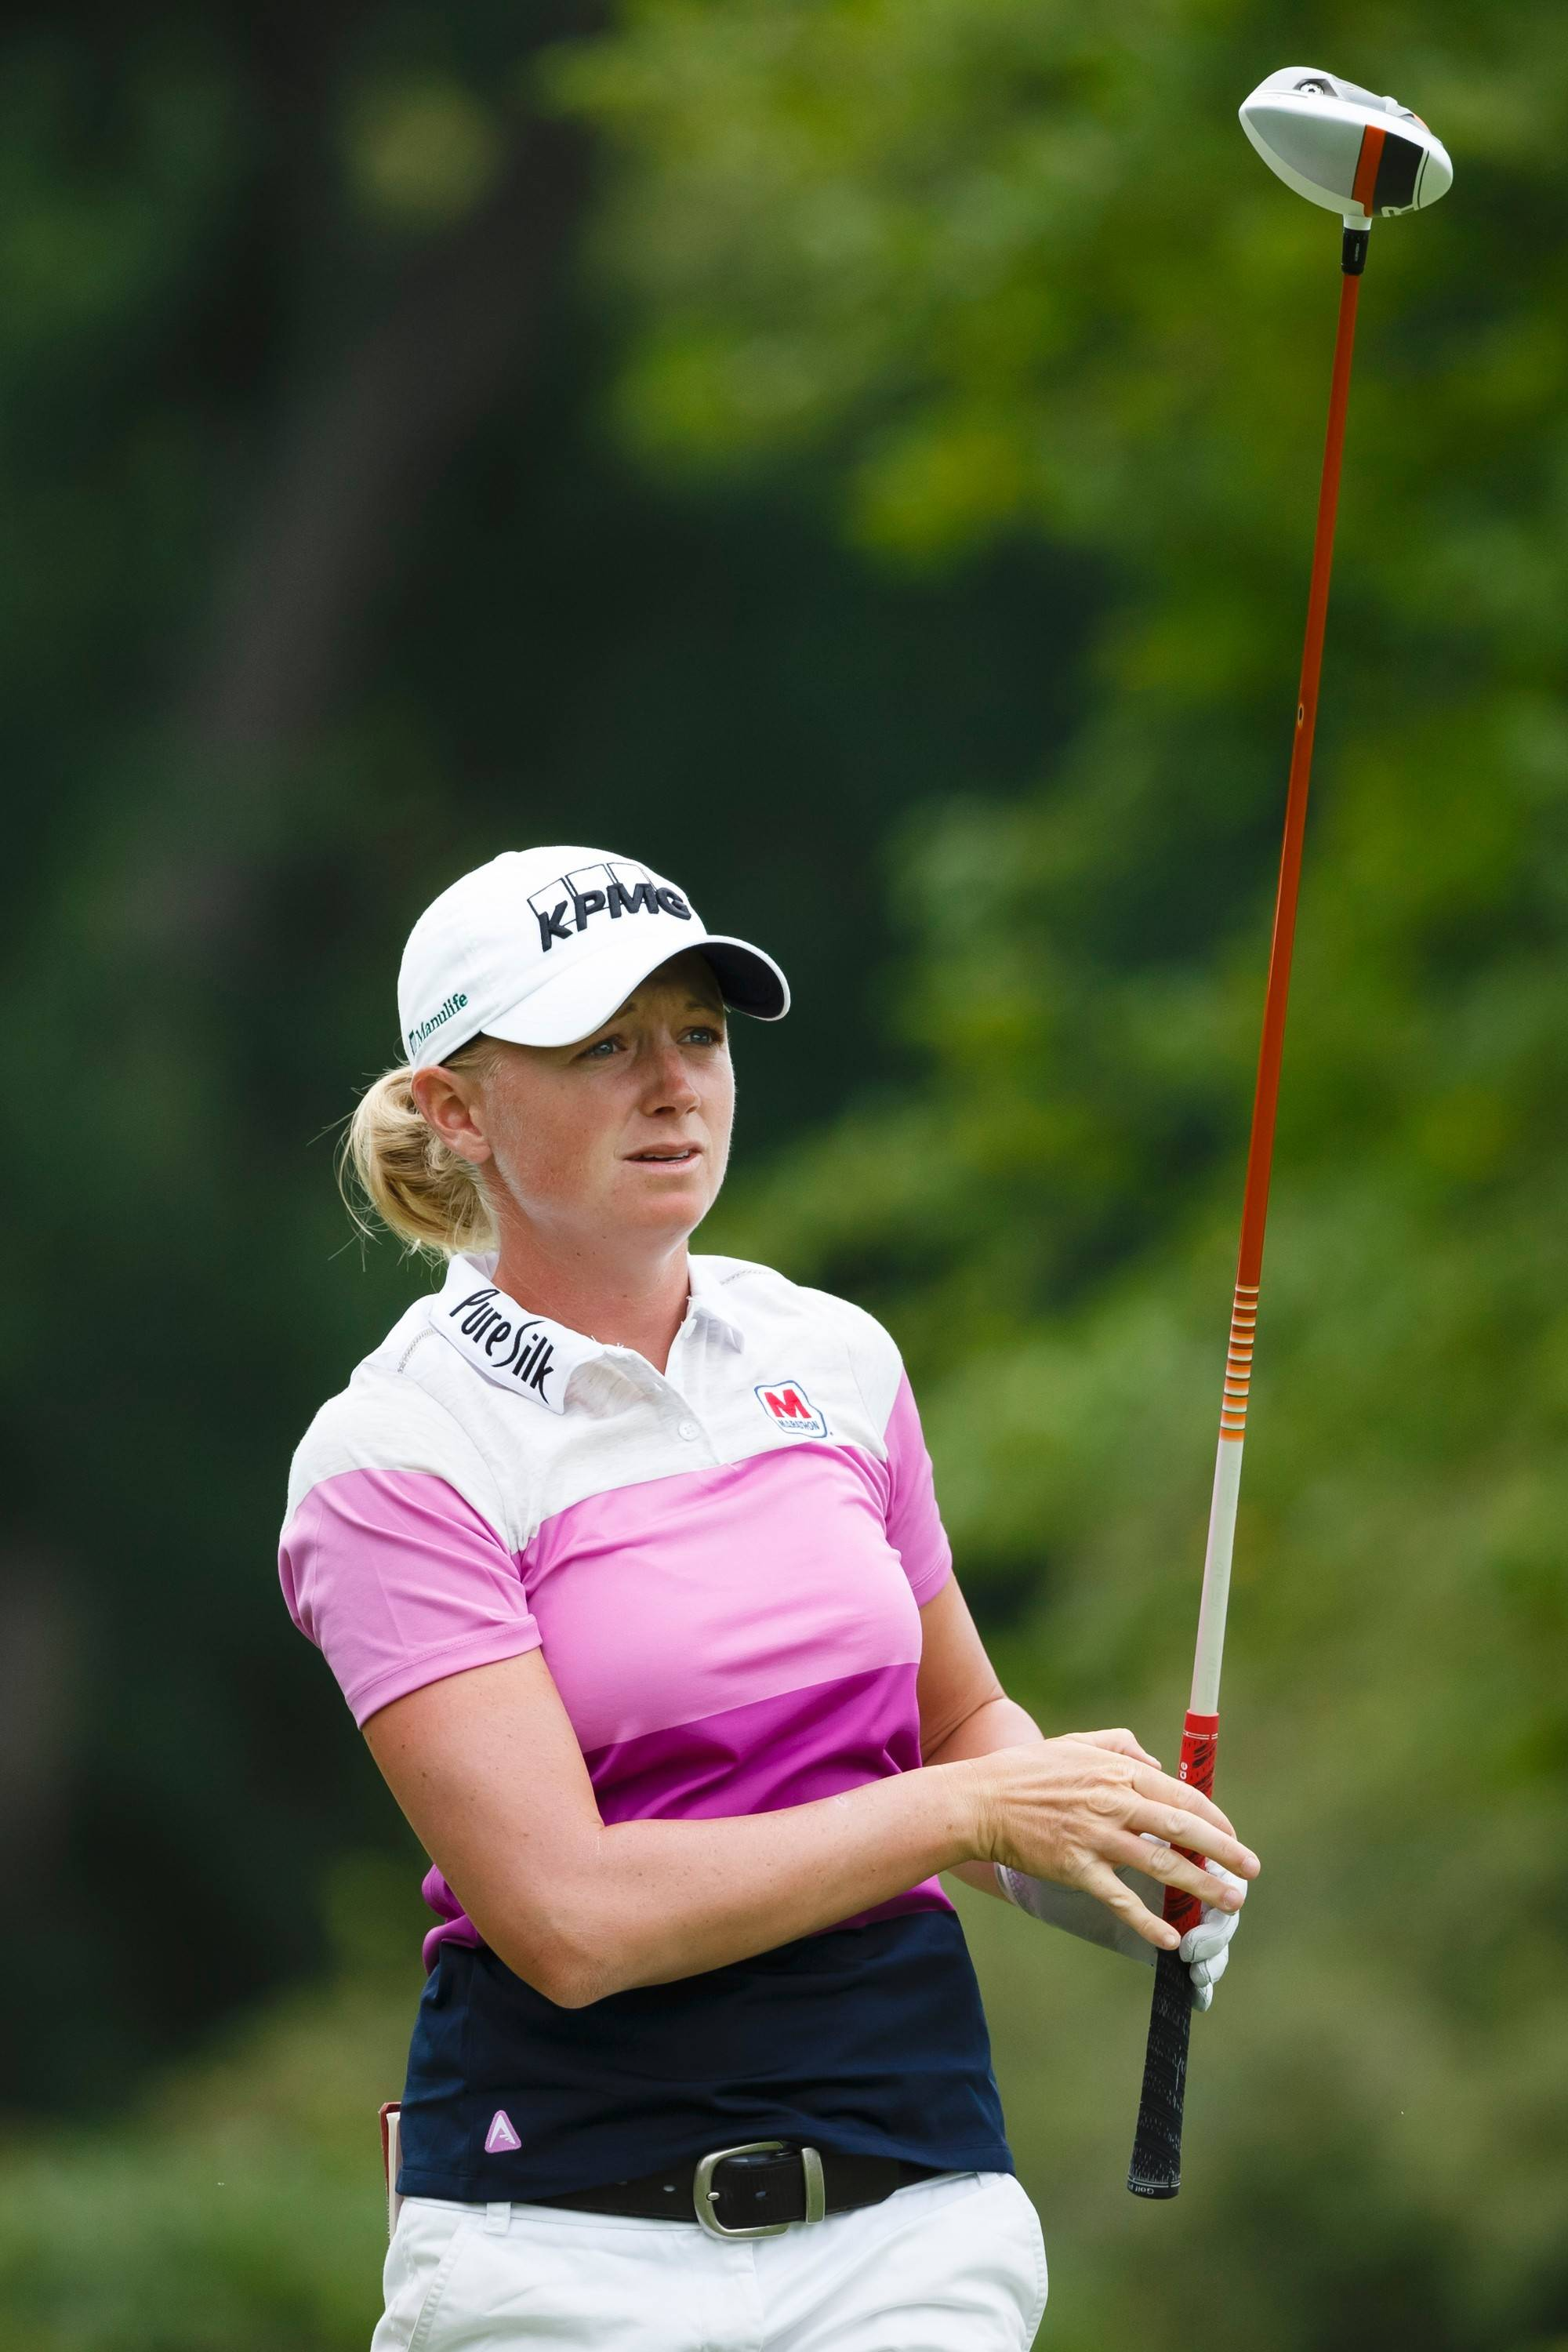 Stacy Lewis, above, will represent the United States in the first International Crown tournament this weekend. The four-member U.S. team includes Paula Creamer, Lexi Thompson and Cristie Kerr.